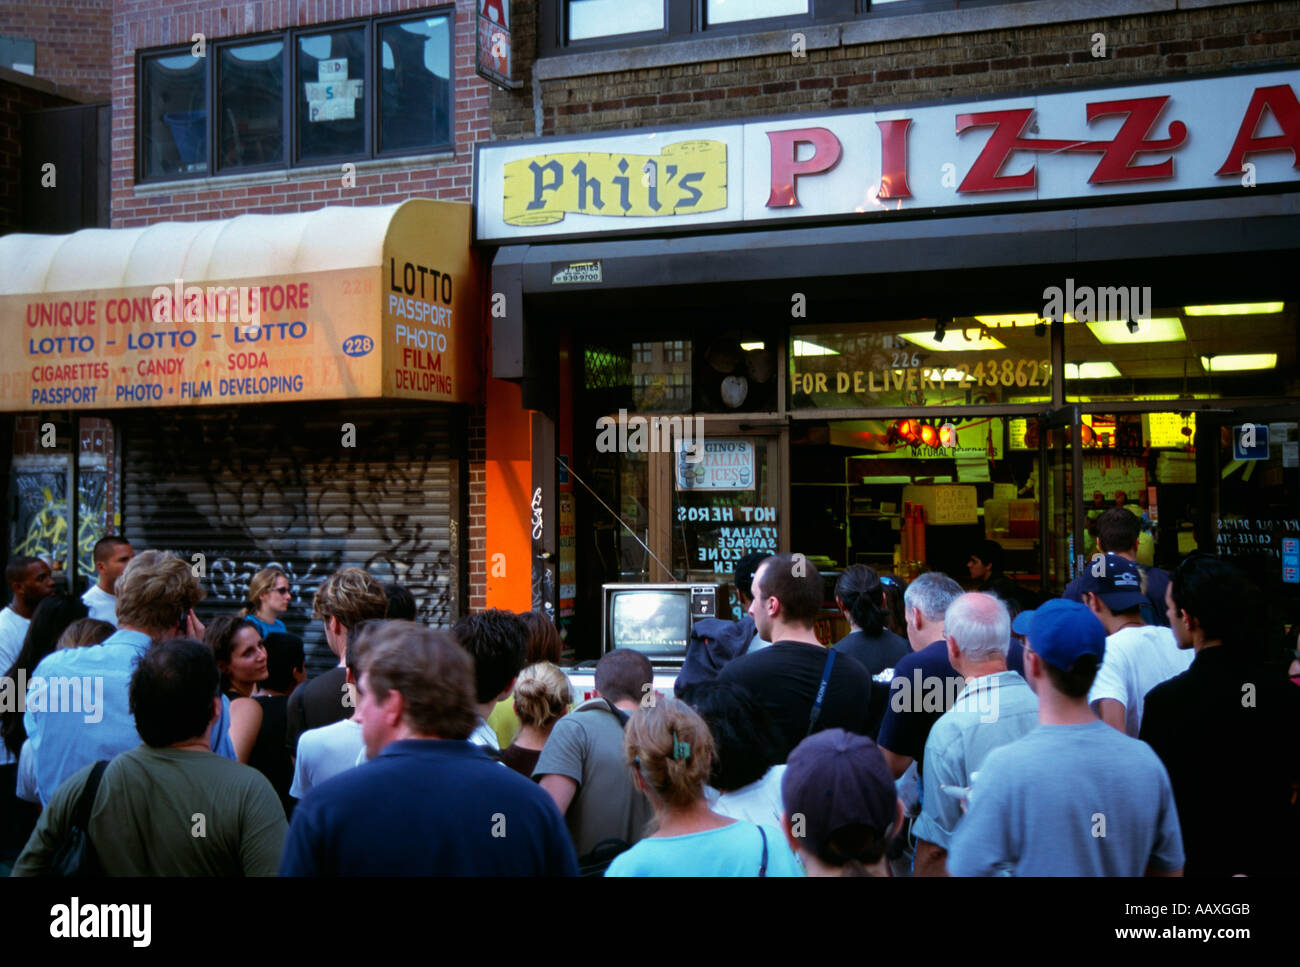 Crowds of people standing on the street watching news broadcasts on 9/11/2001 in NYC looking for information. - Stock Image